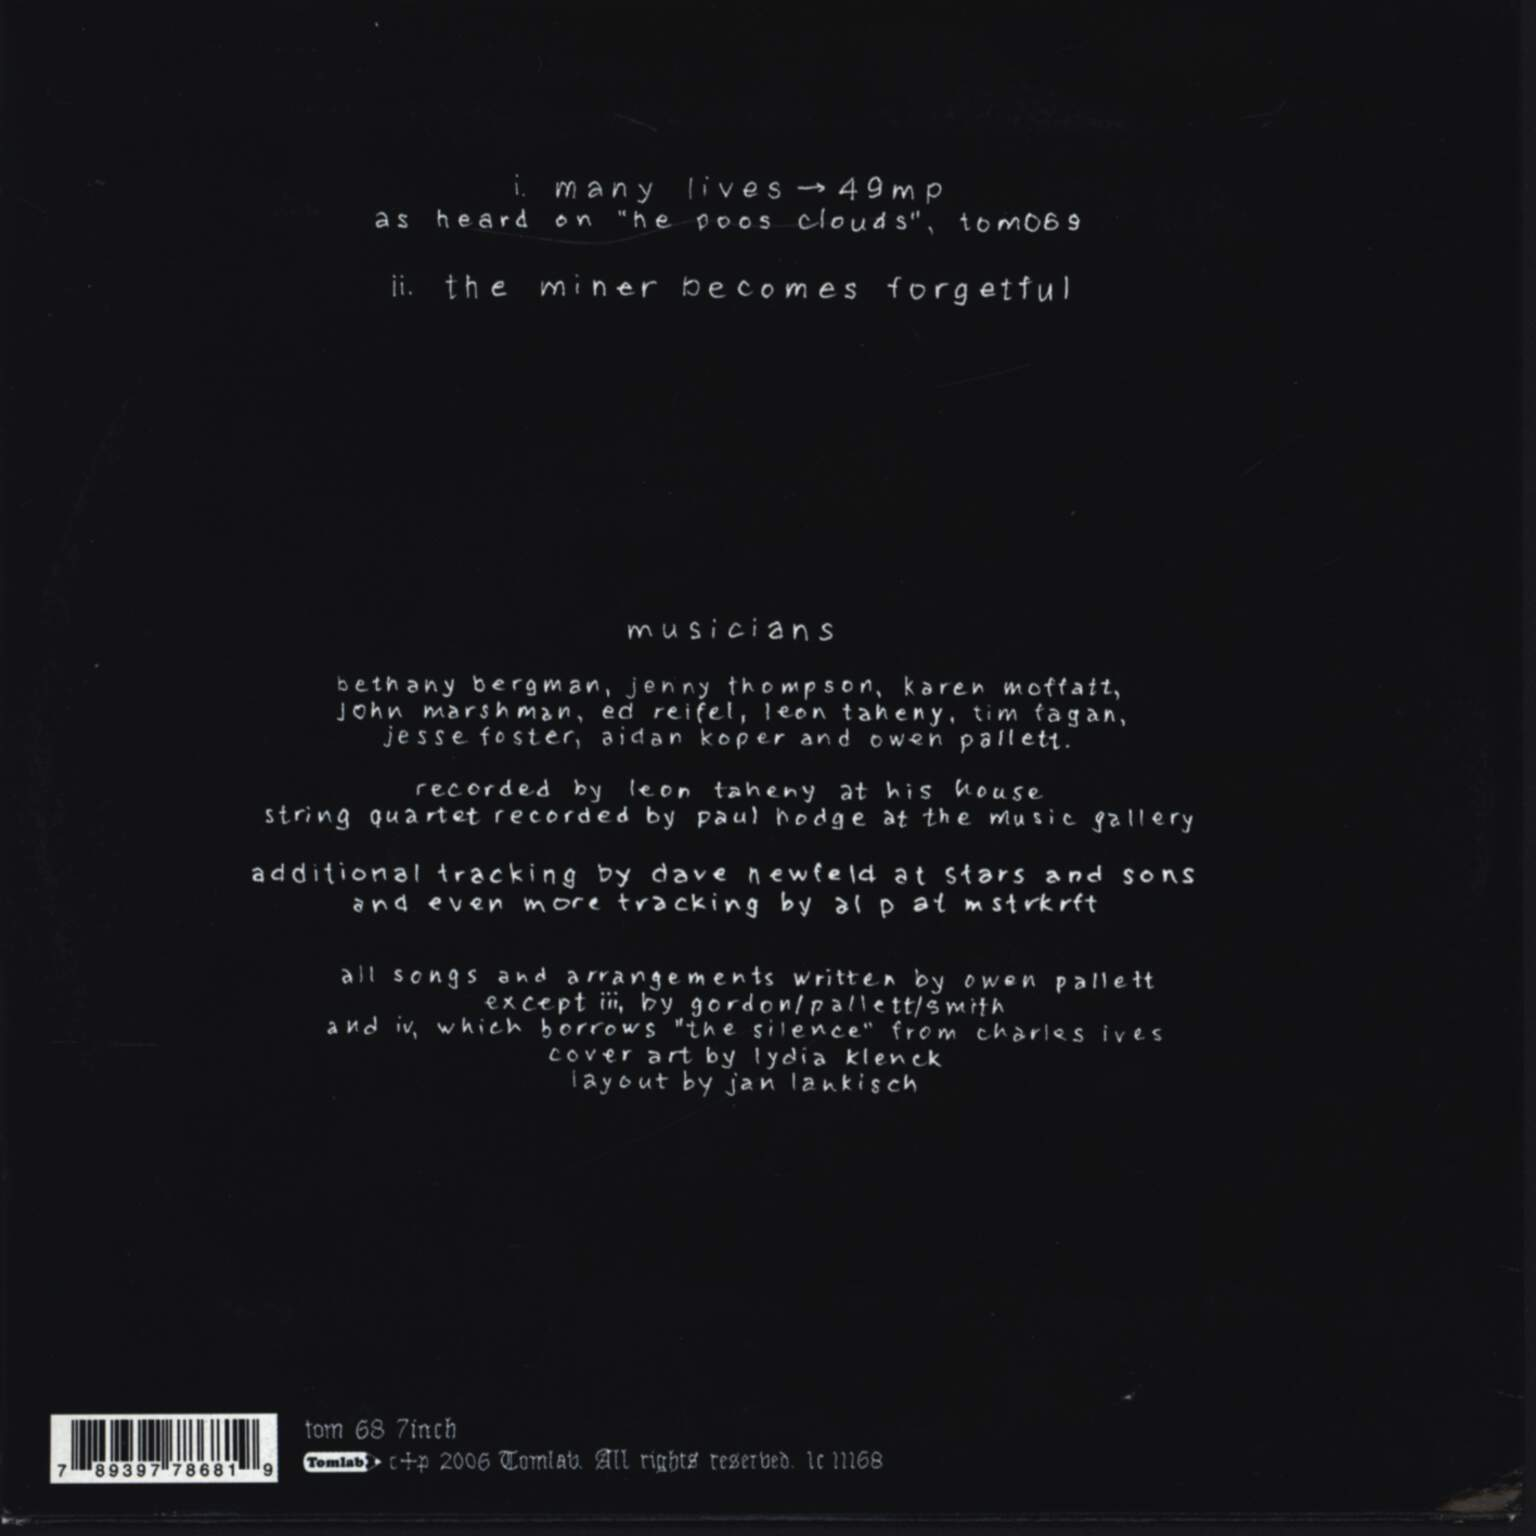 "Final Fantasy: Many Lives → 49 MP, 7"" Single (Vinyl)"